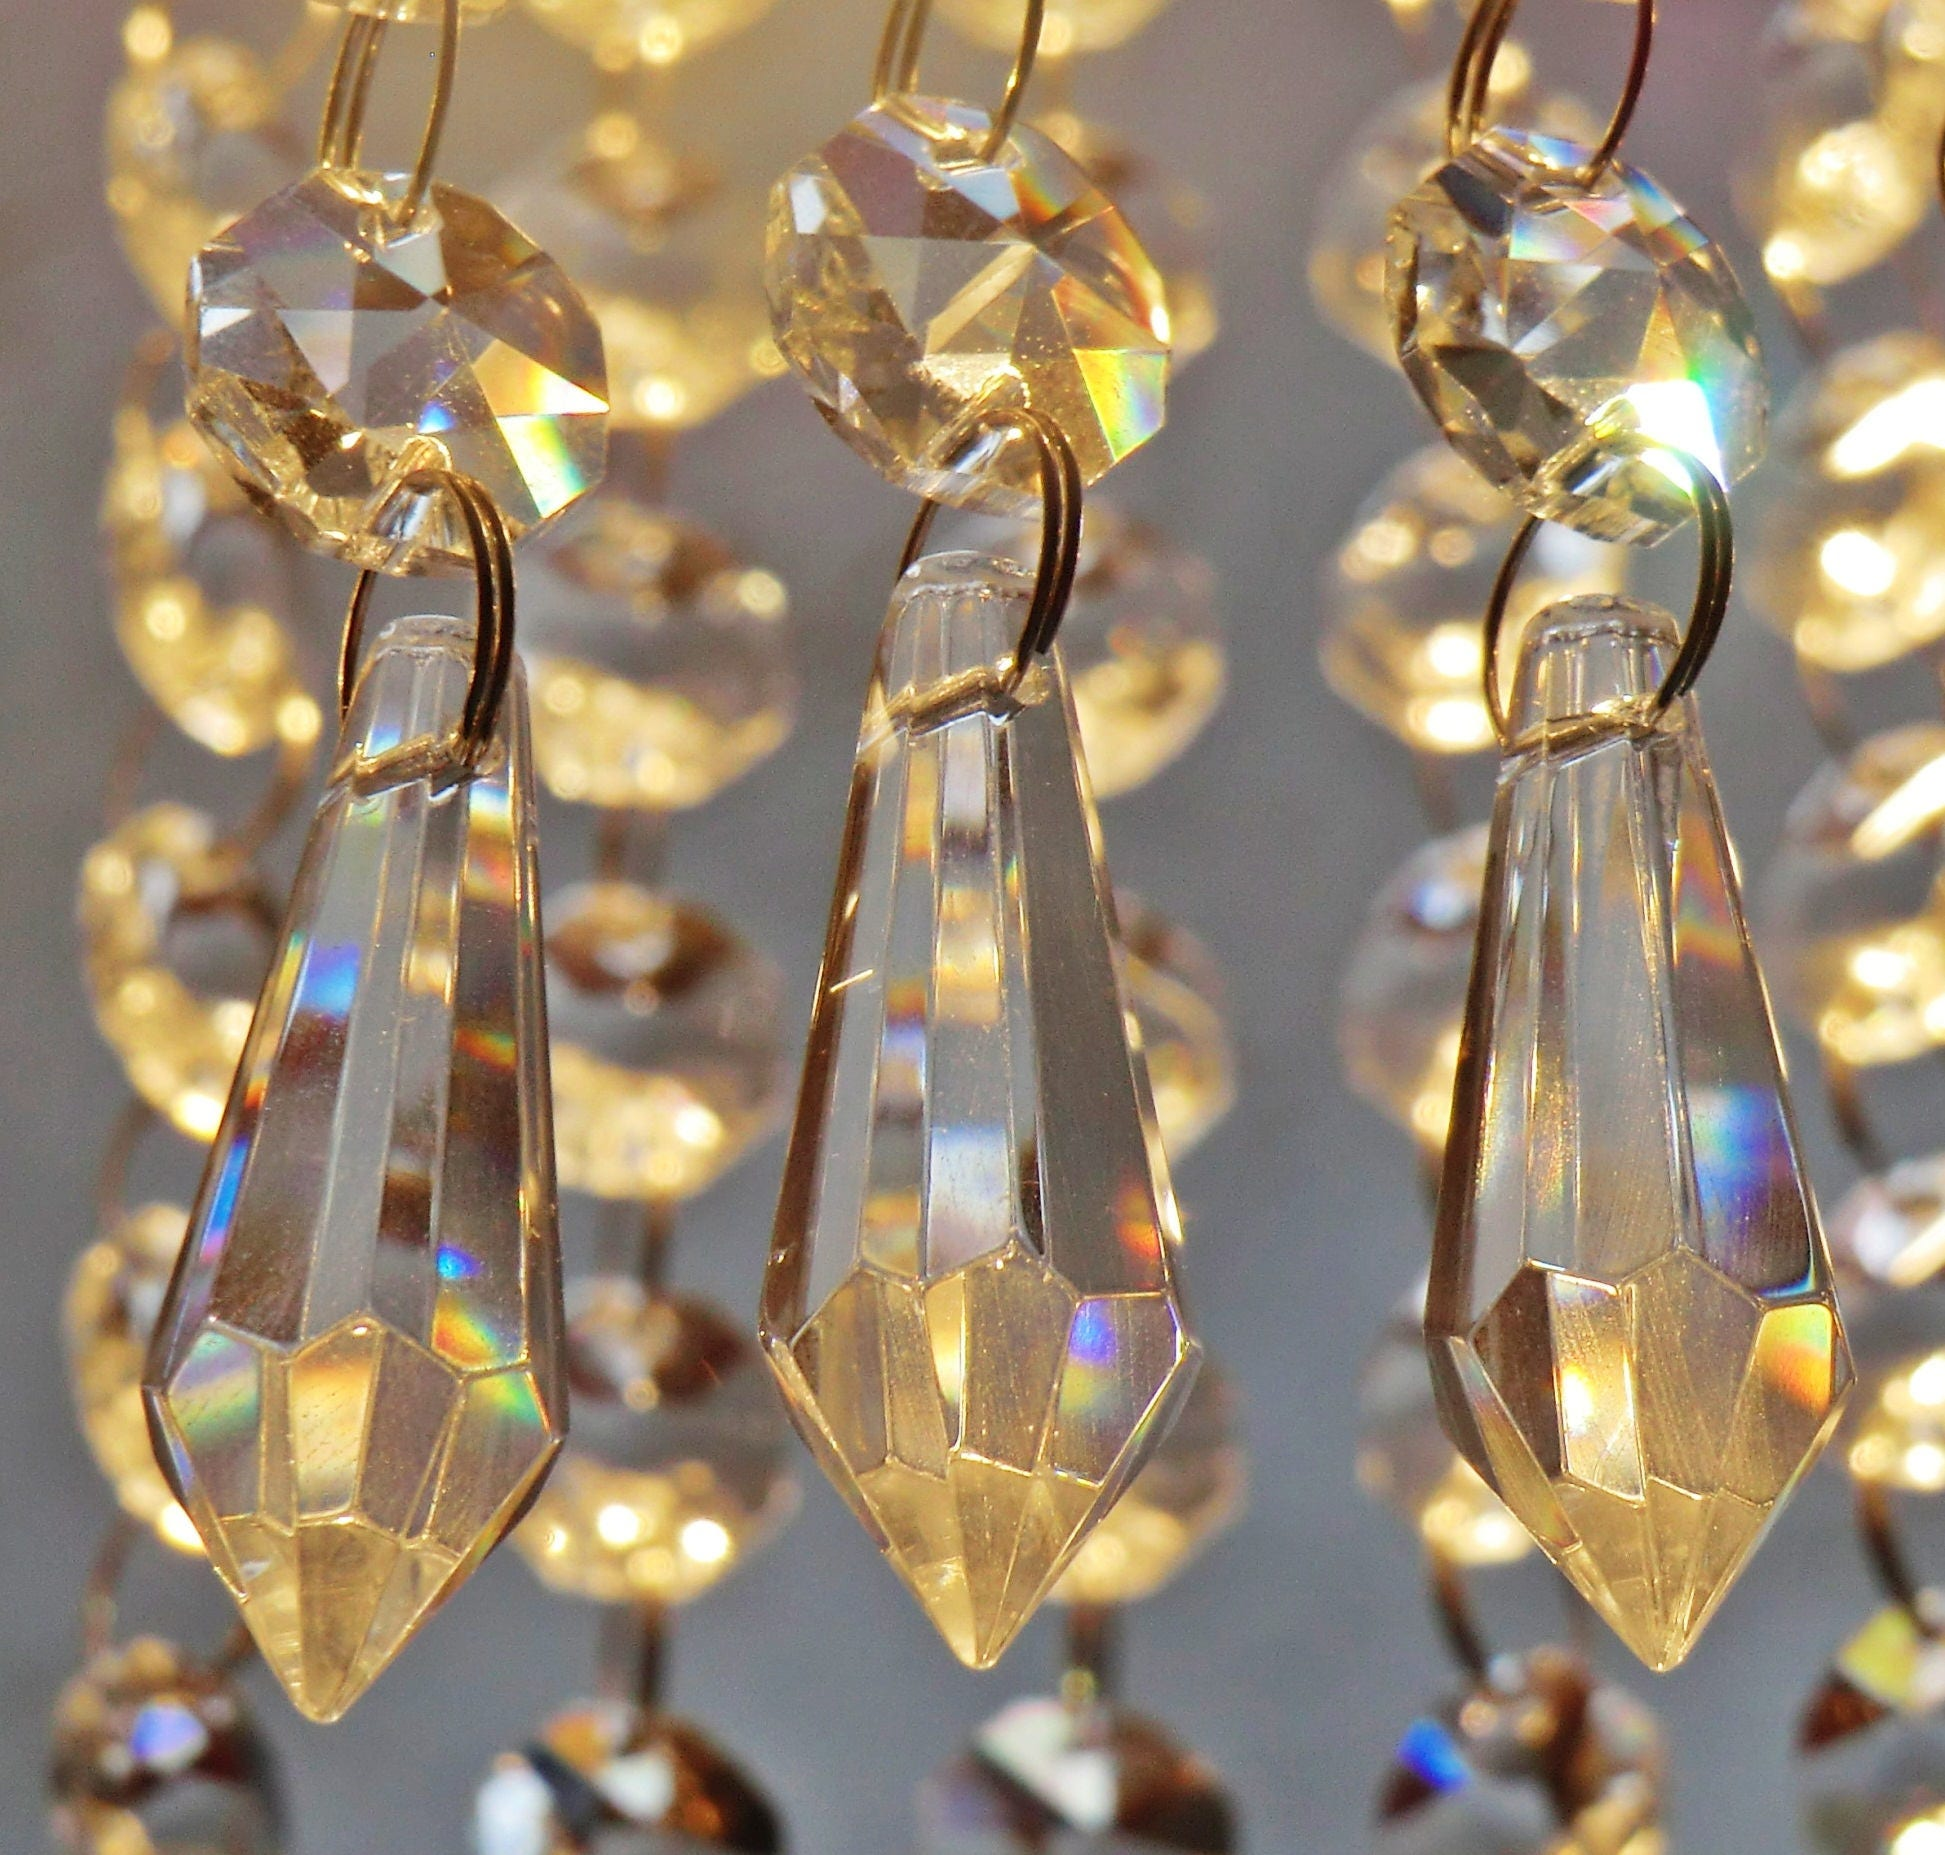 24 Chandelier Drops Parts Glass & XL Prisms Crystals Shabby ...